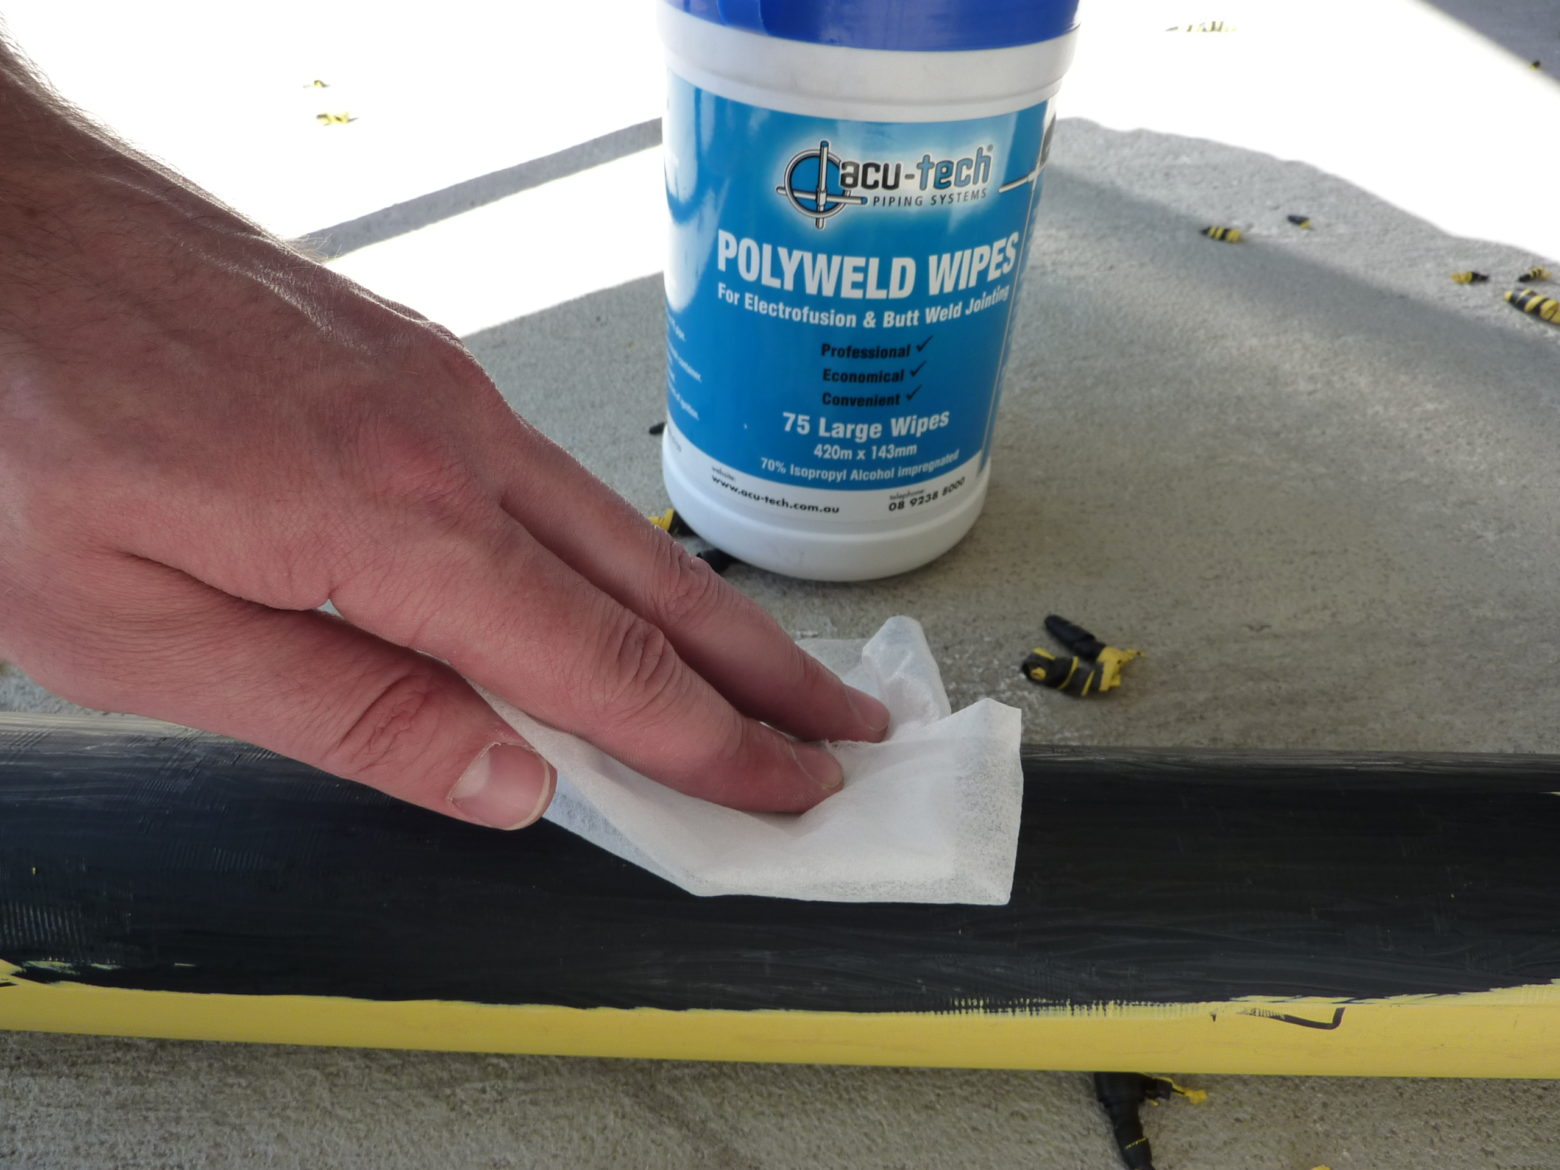 Polyweld Wipes - In Use